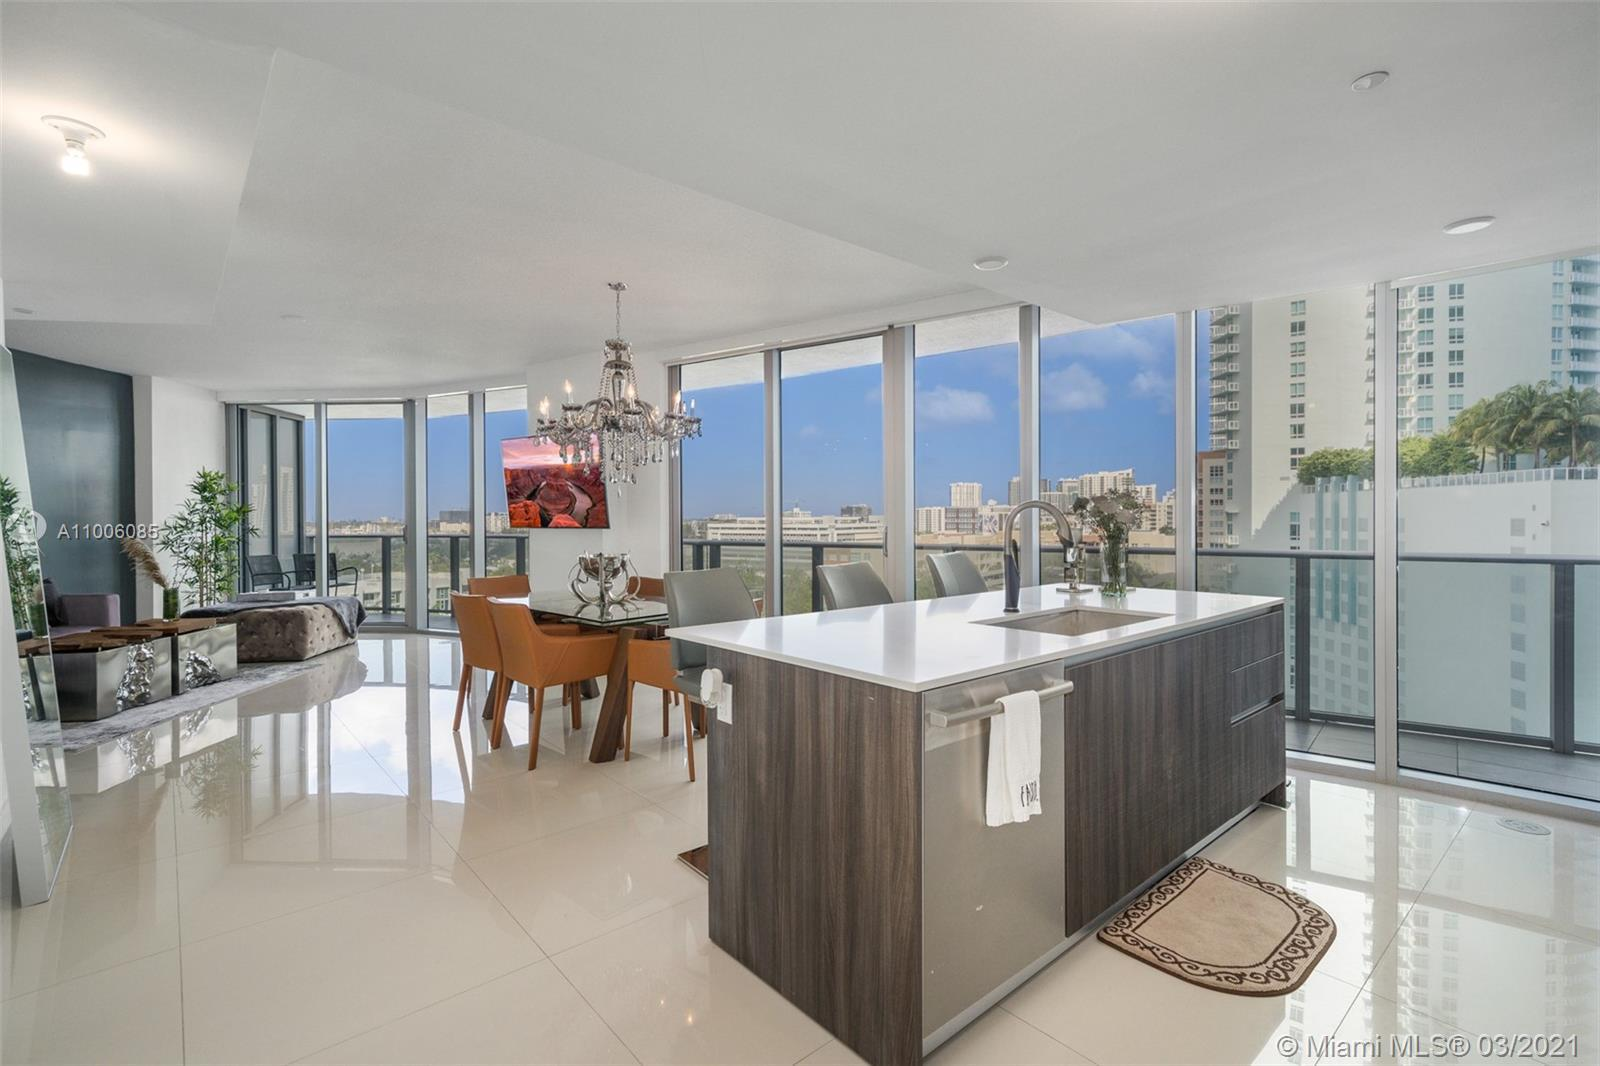 Large 2 bedroom /2.5 bath at Aria, one of the newest luxury buildings in southern Edgewater. Unique